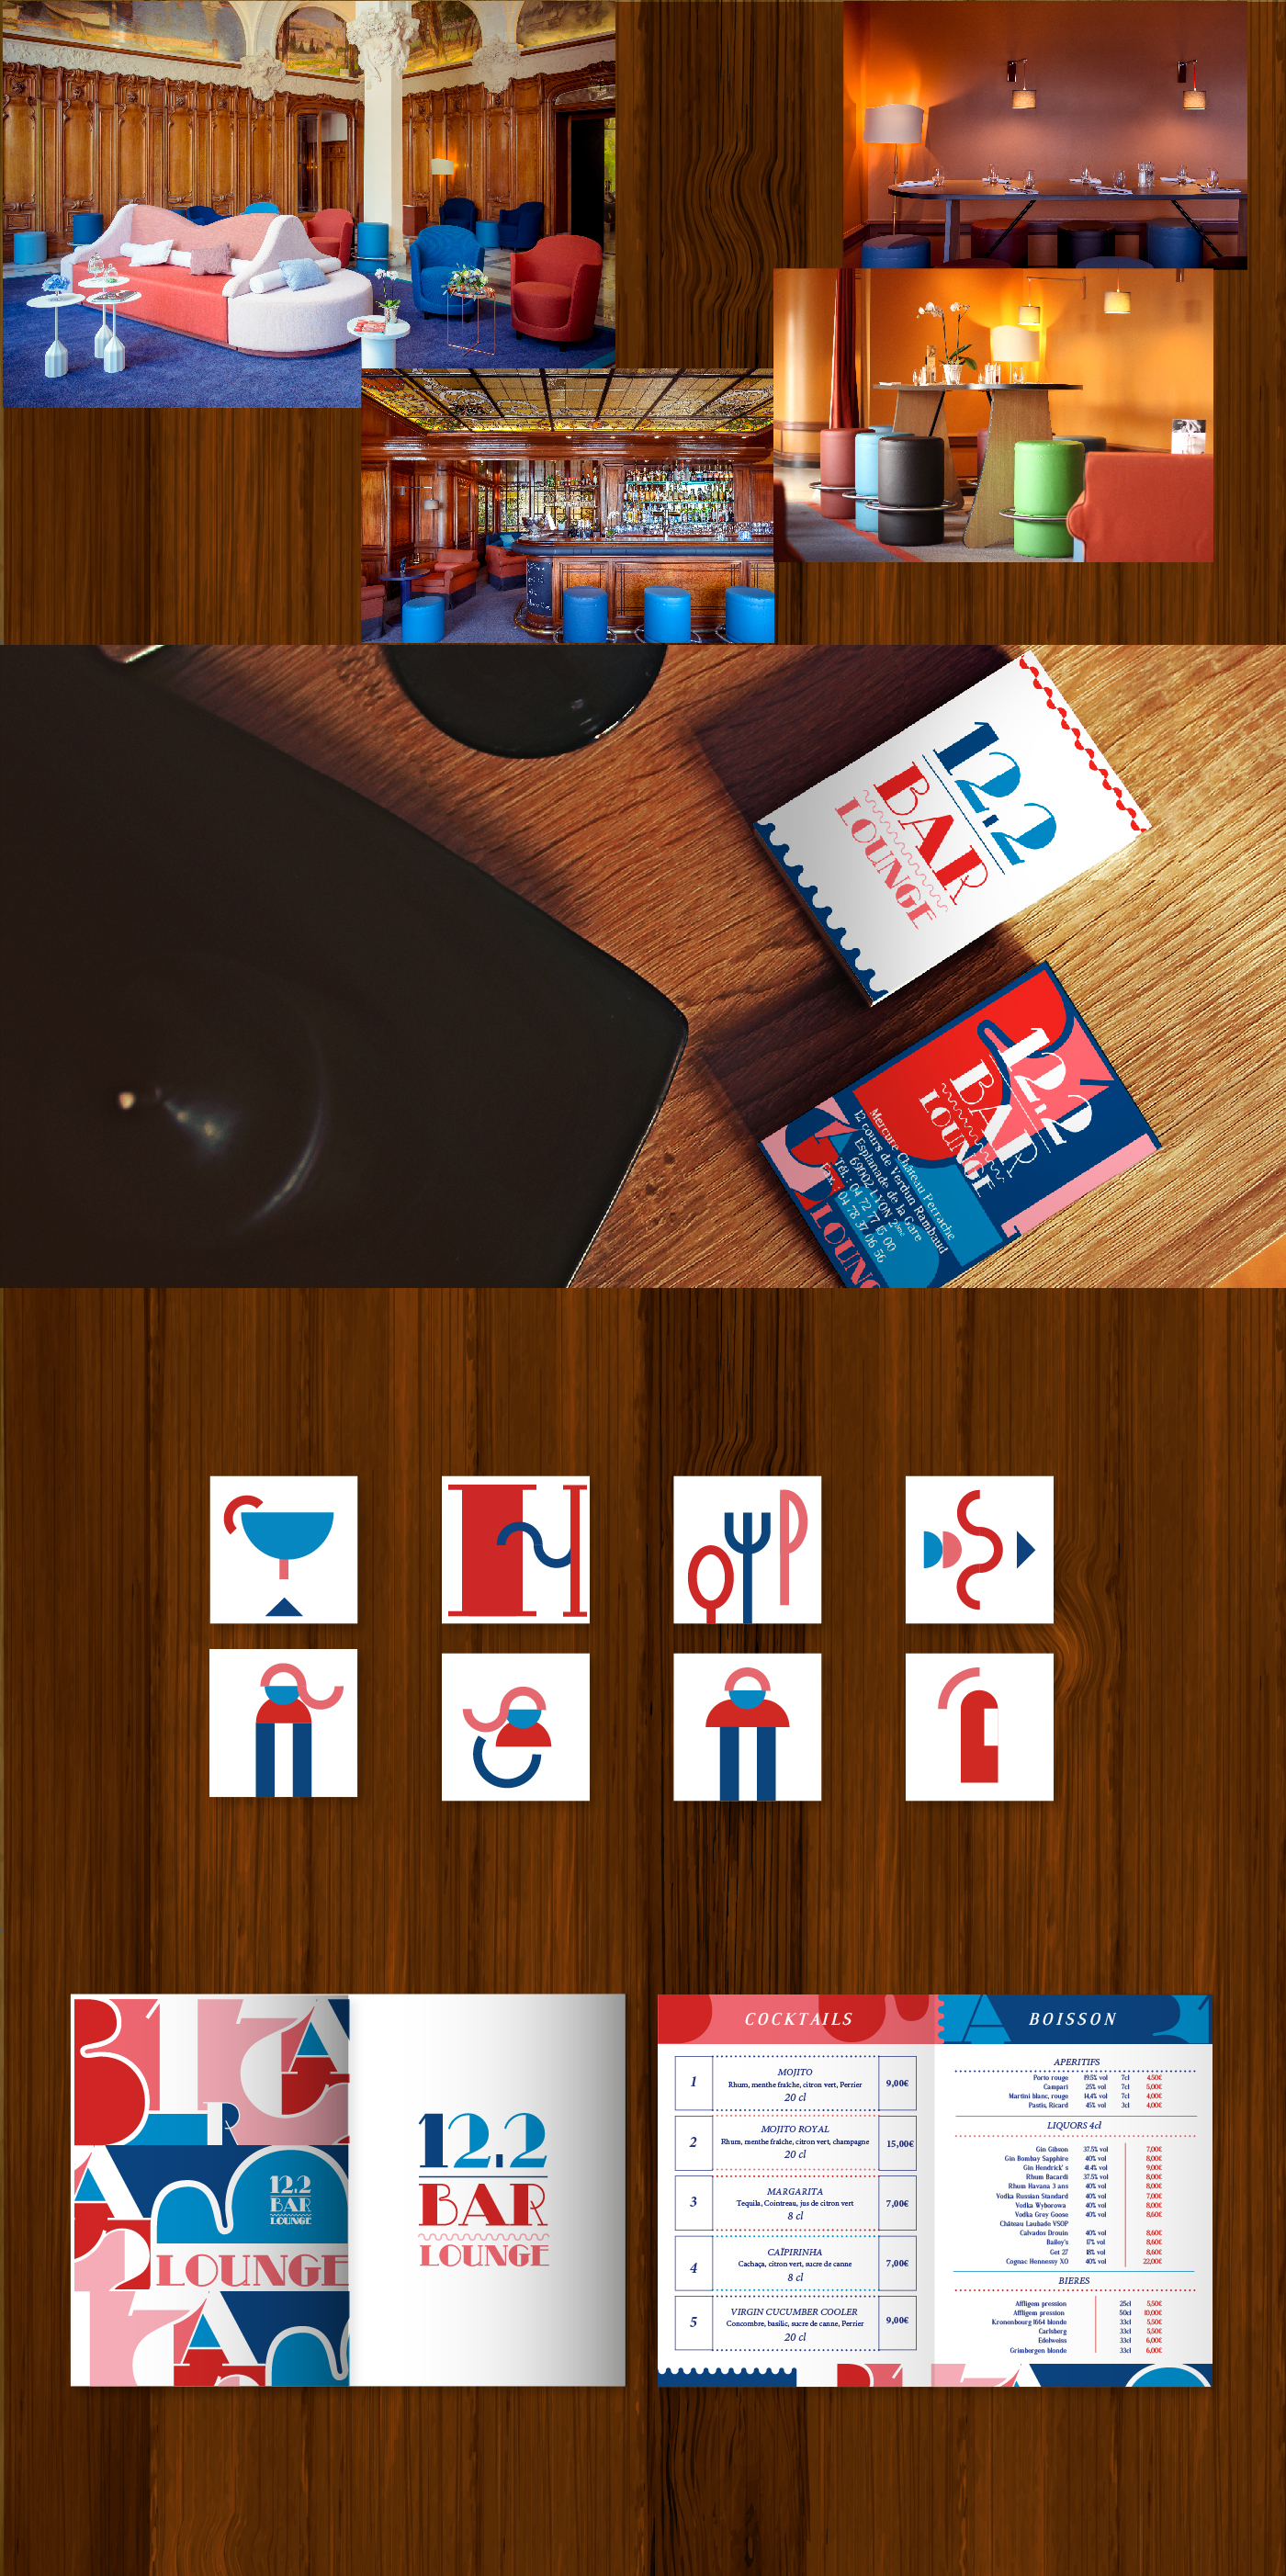 12,2 bar lounge branding created by Sara Villanueva